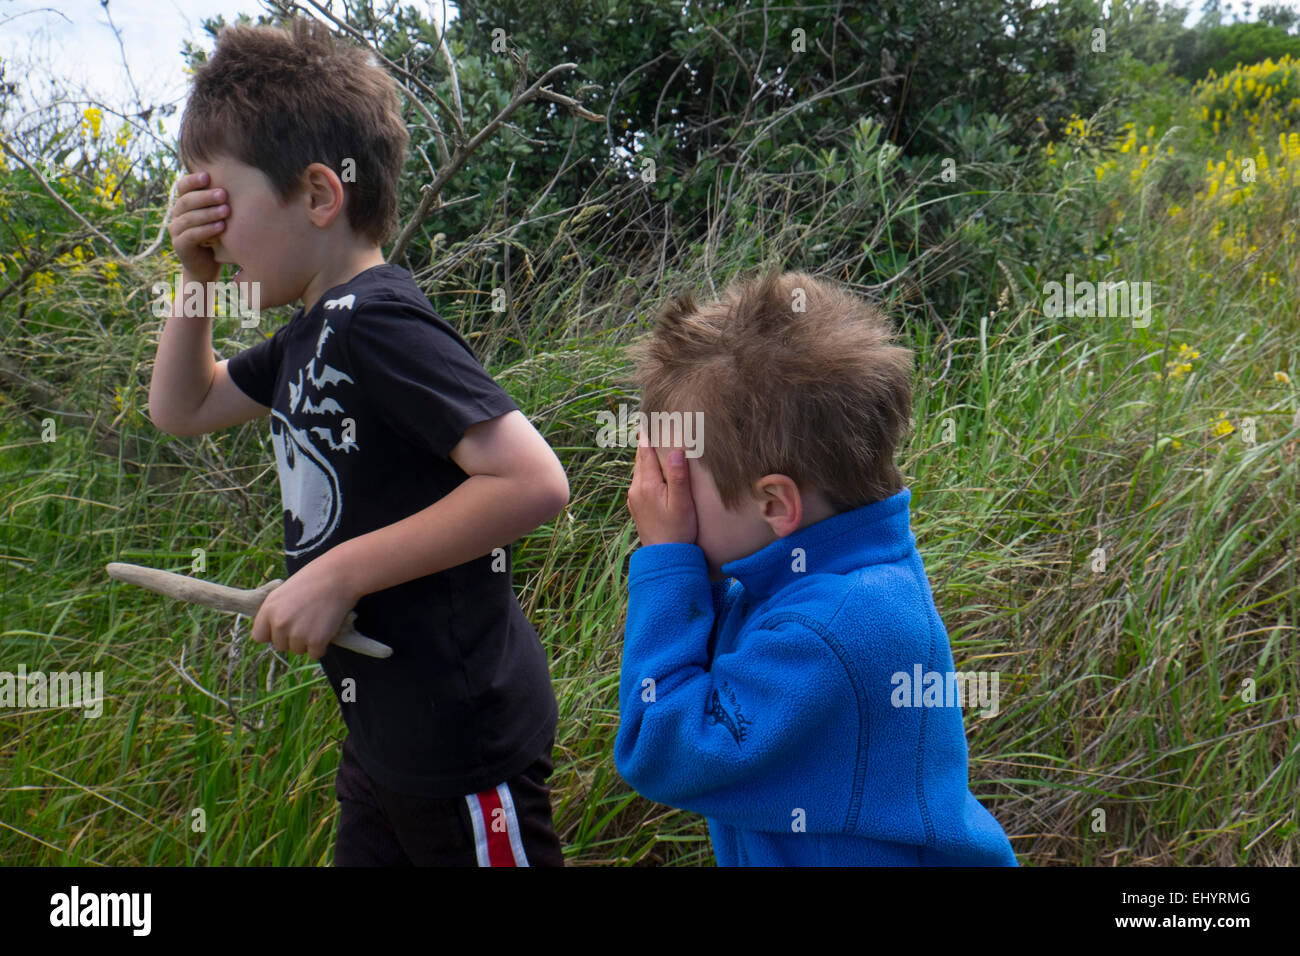 Children playing hide and seek in field - Stock Image